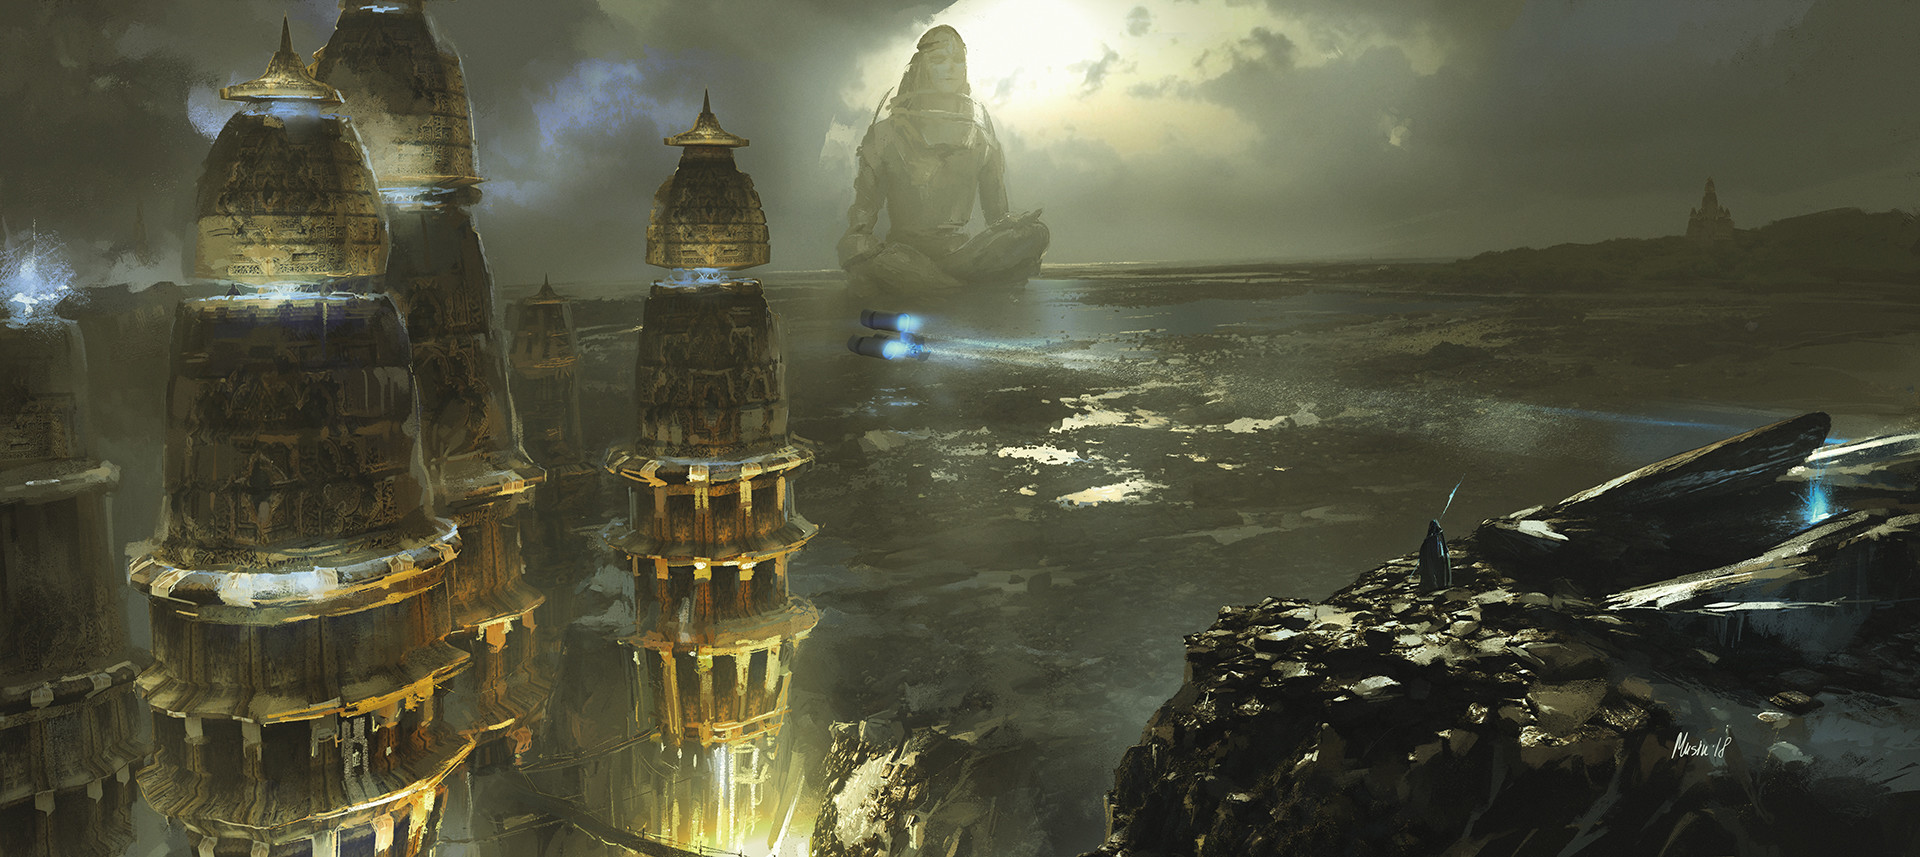 Sergey musin enter the void2